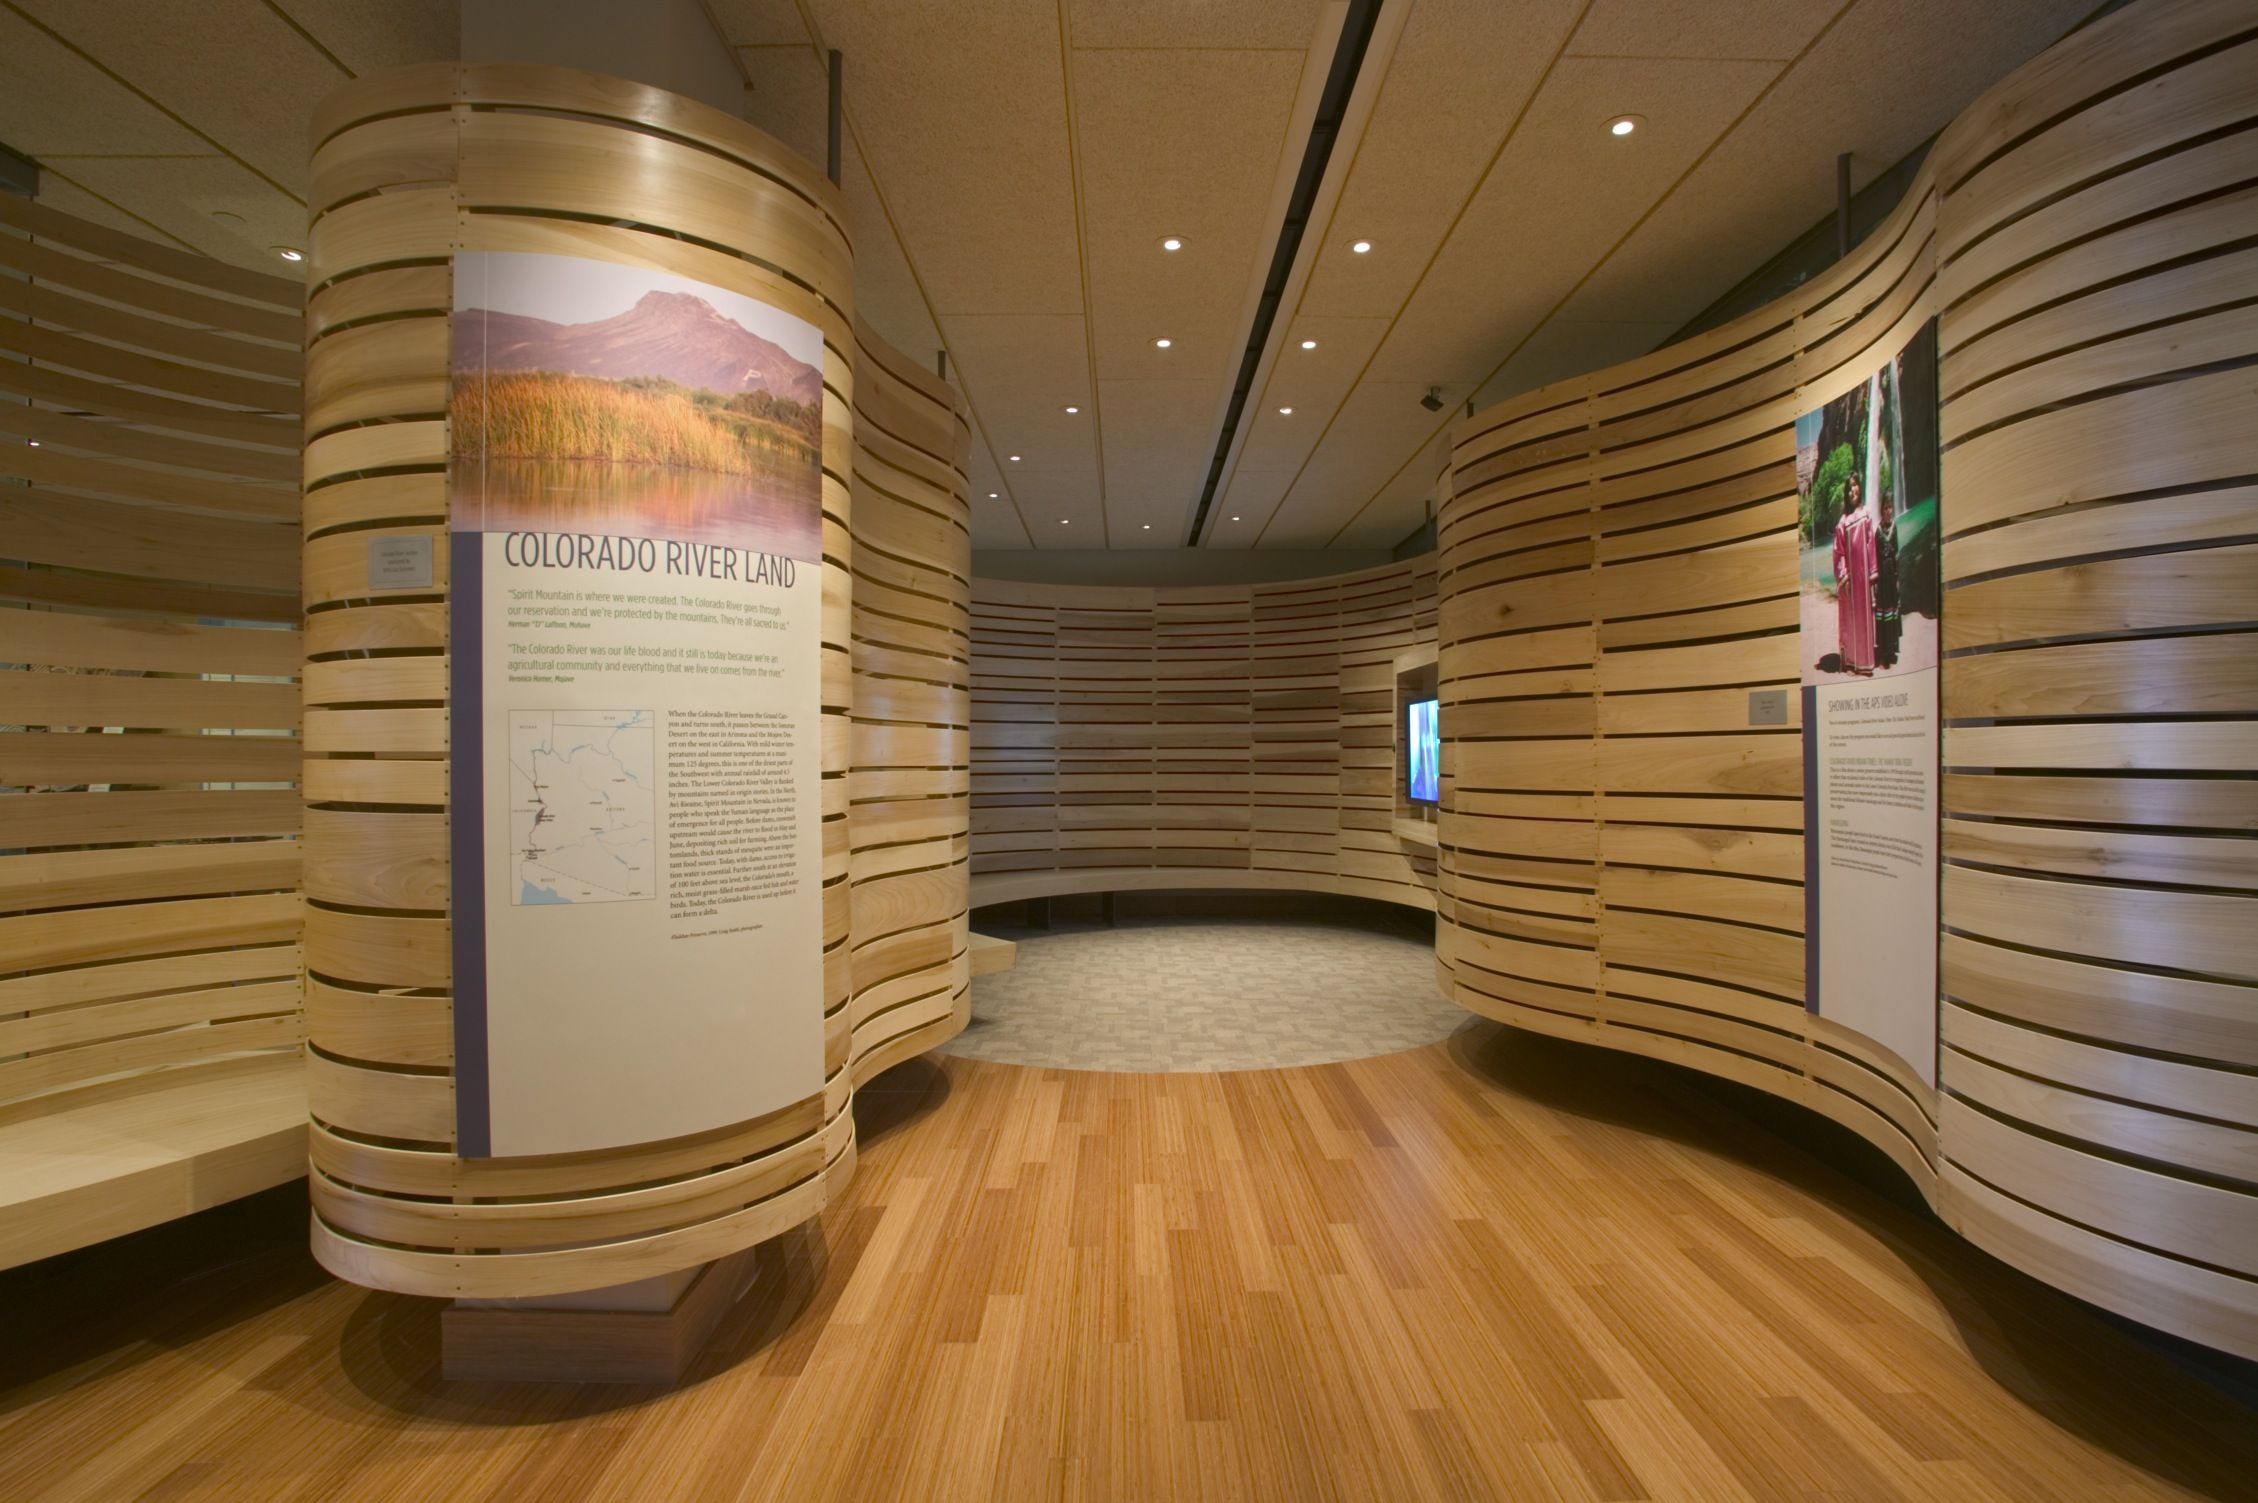 Curved wood walls integrated panels design it pinterest for Curved wall